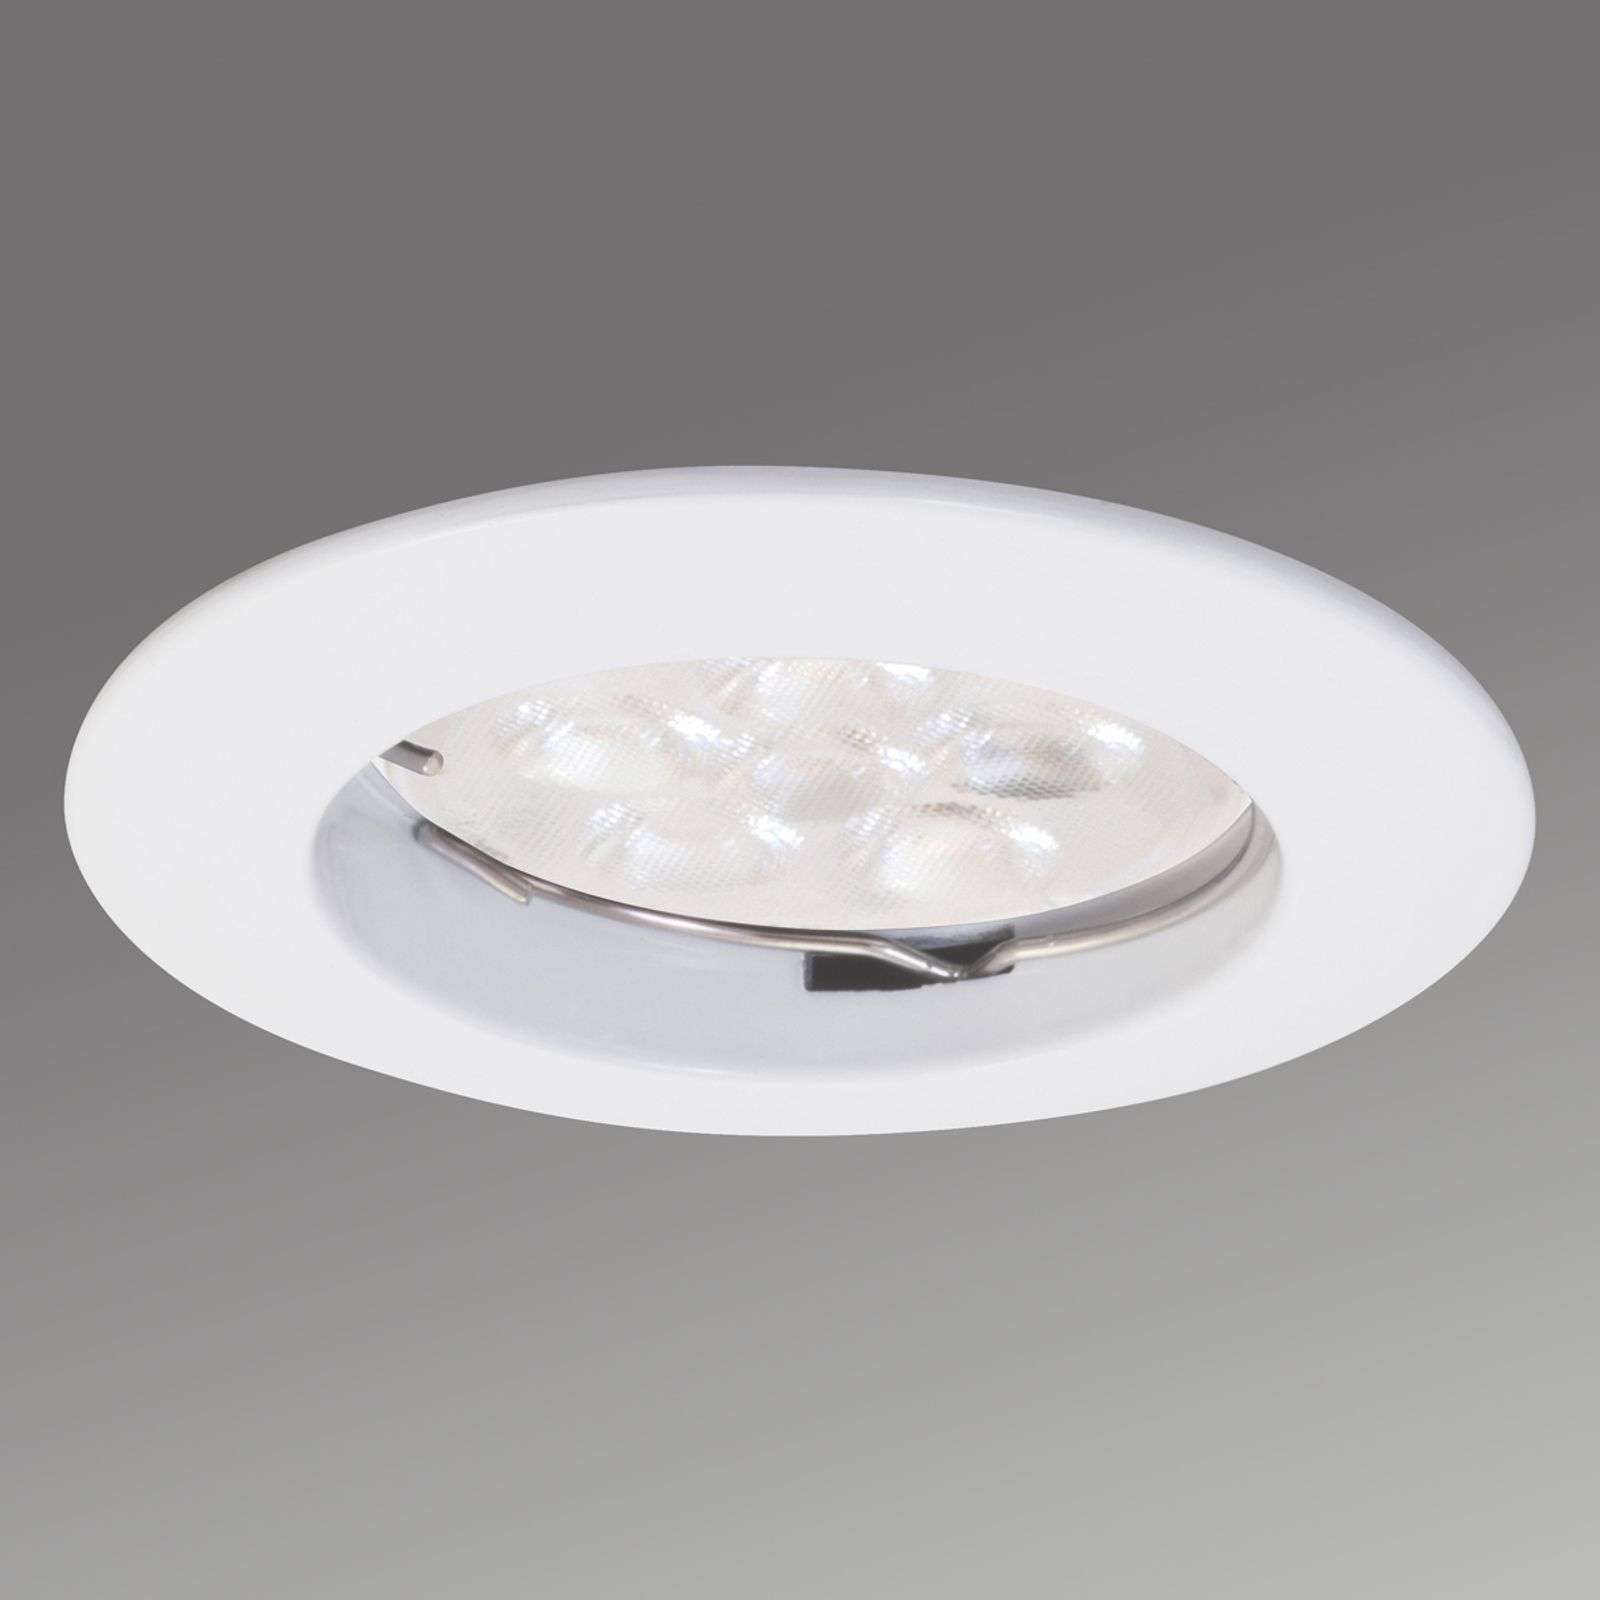 Round Downlight DIM LED recessed light in white